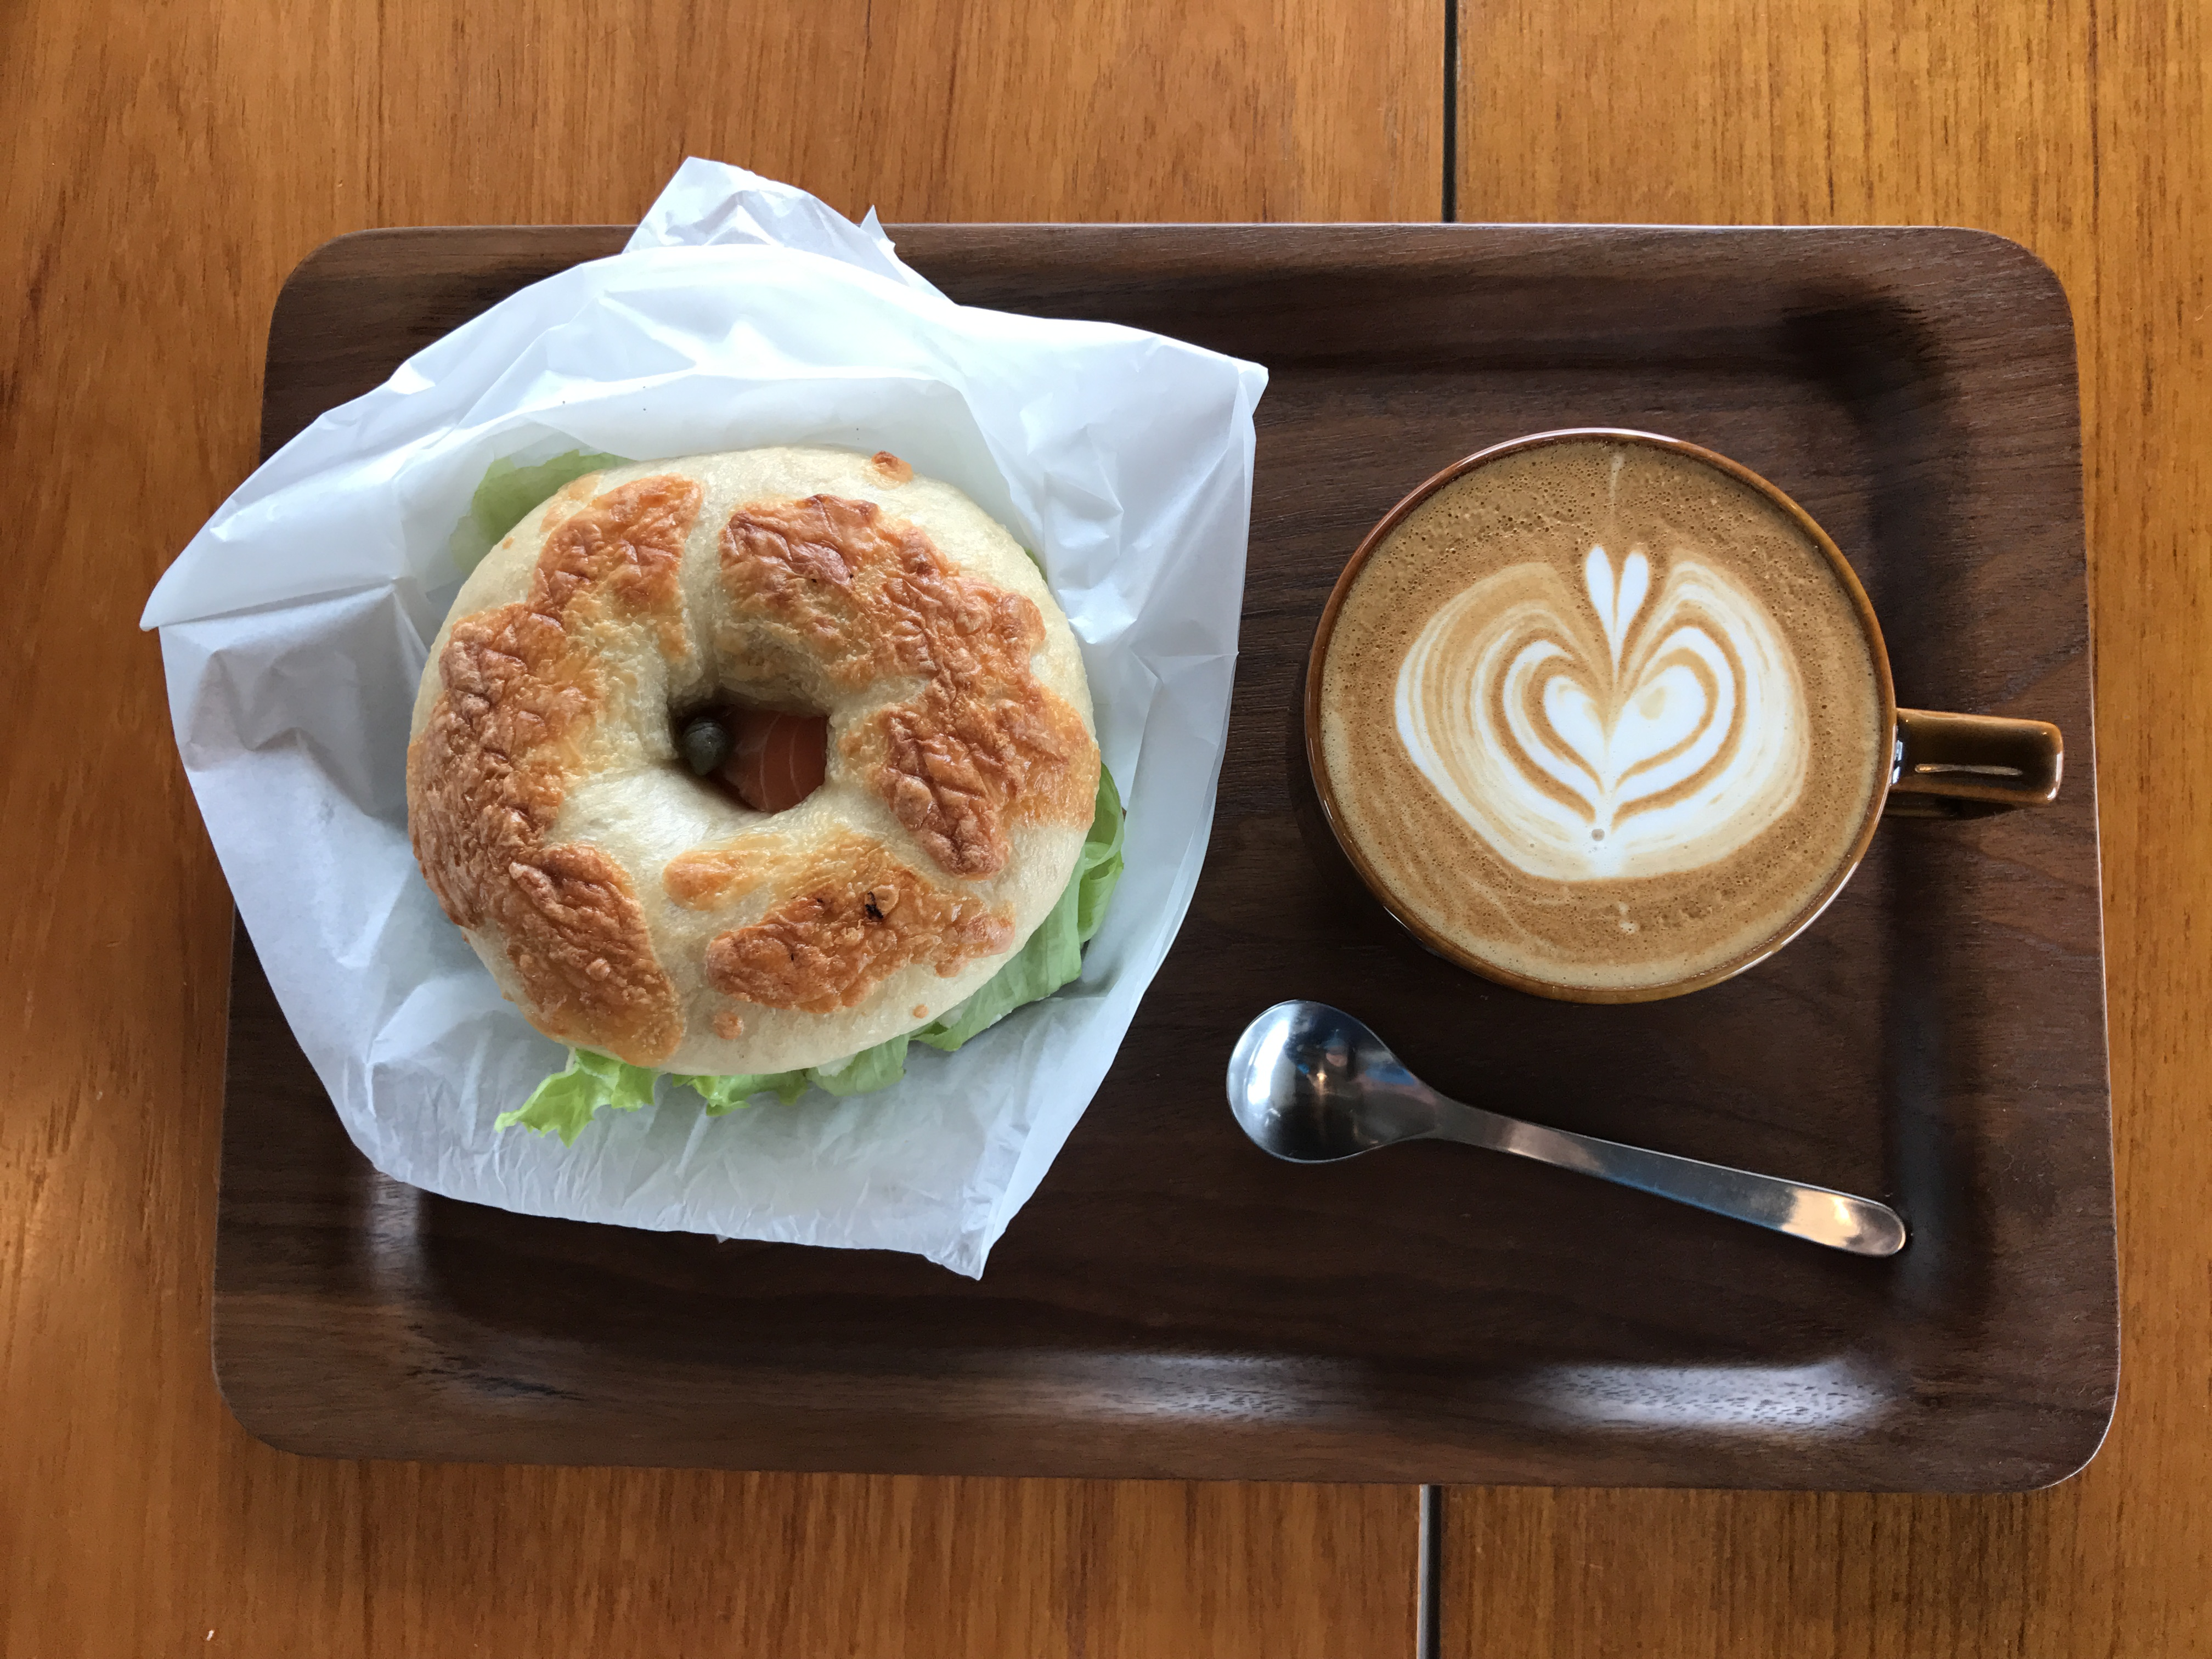 The best bagel and coffee at Seed Bagel & Coffee Company Photo: Johana Shobu